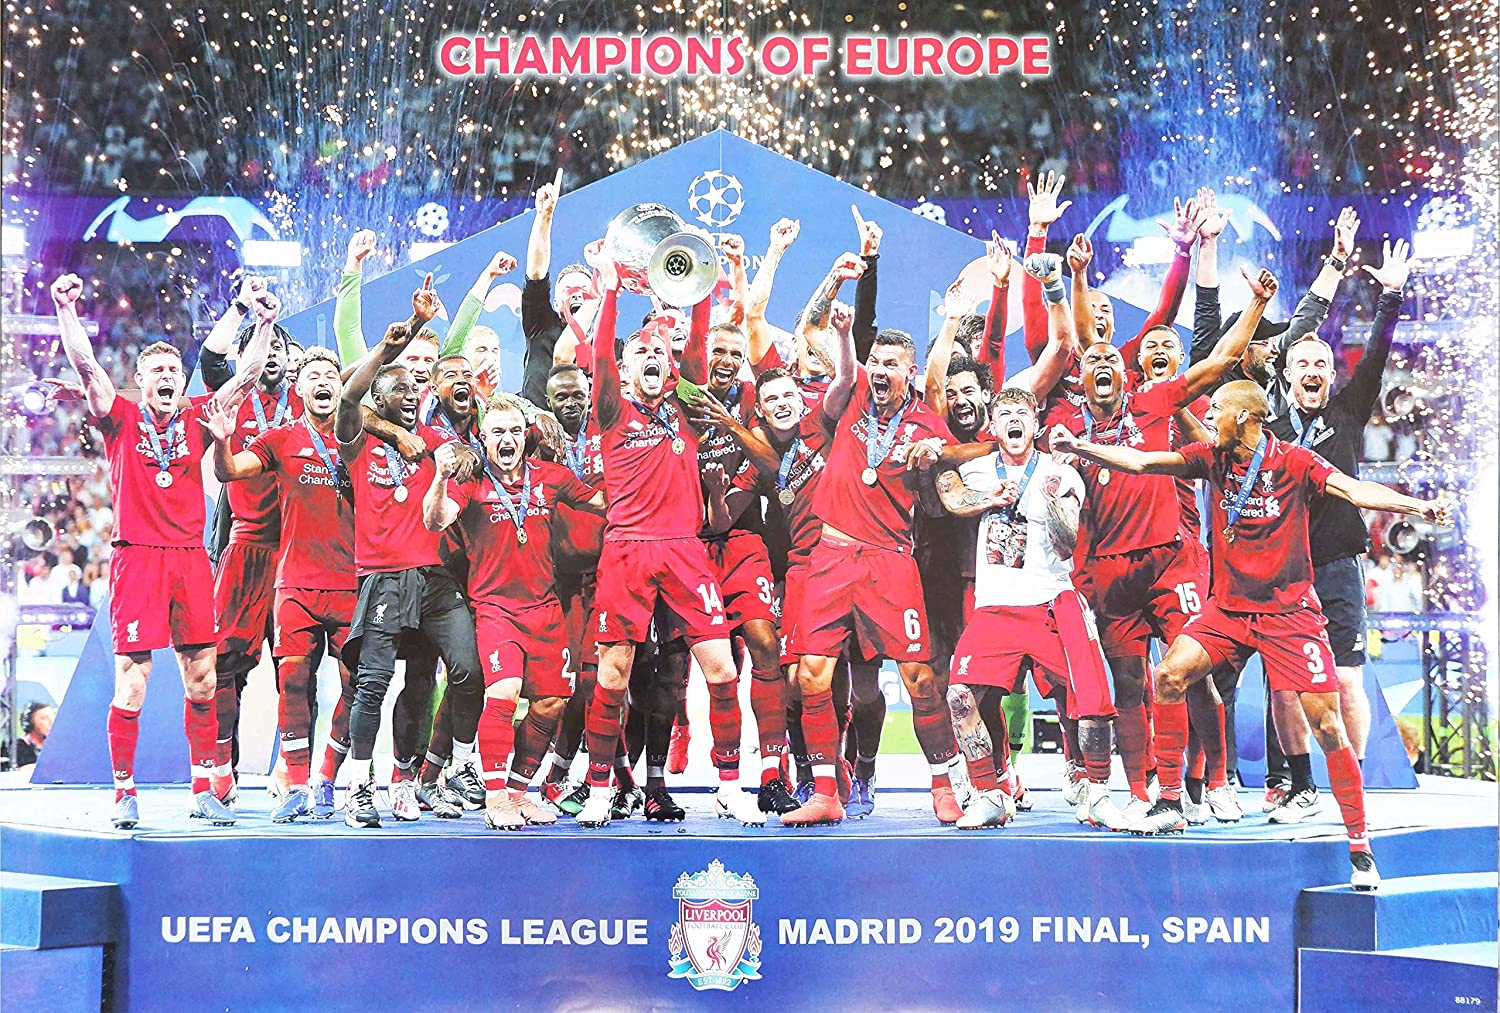 Amazon Com Liverpool F C Uefa Champions League Madrid 2019 Final Spain Football Soccer Wall Decoration Poster 003 Home Kitchen